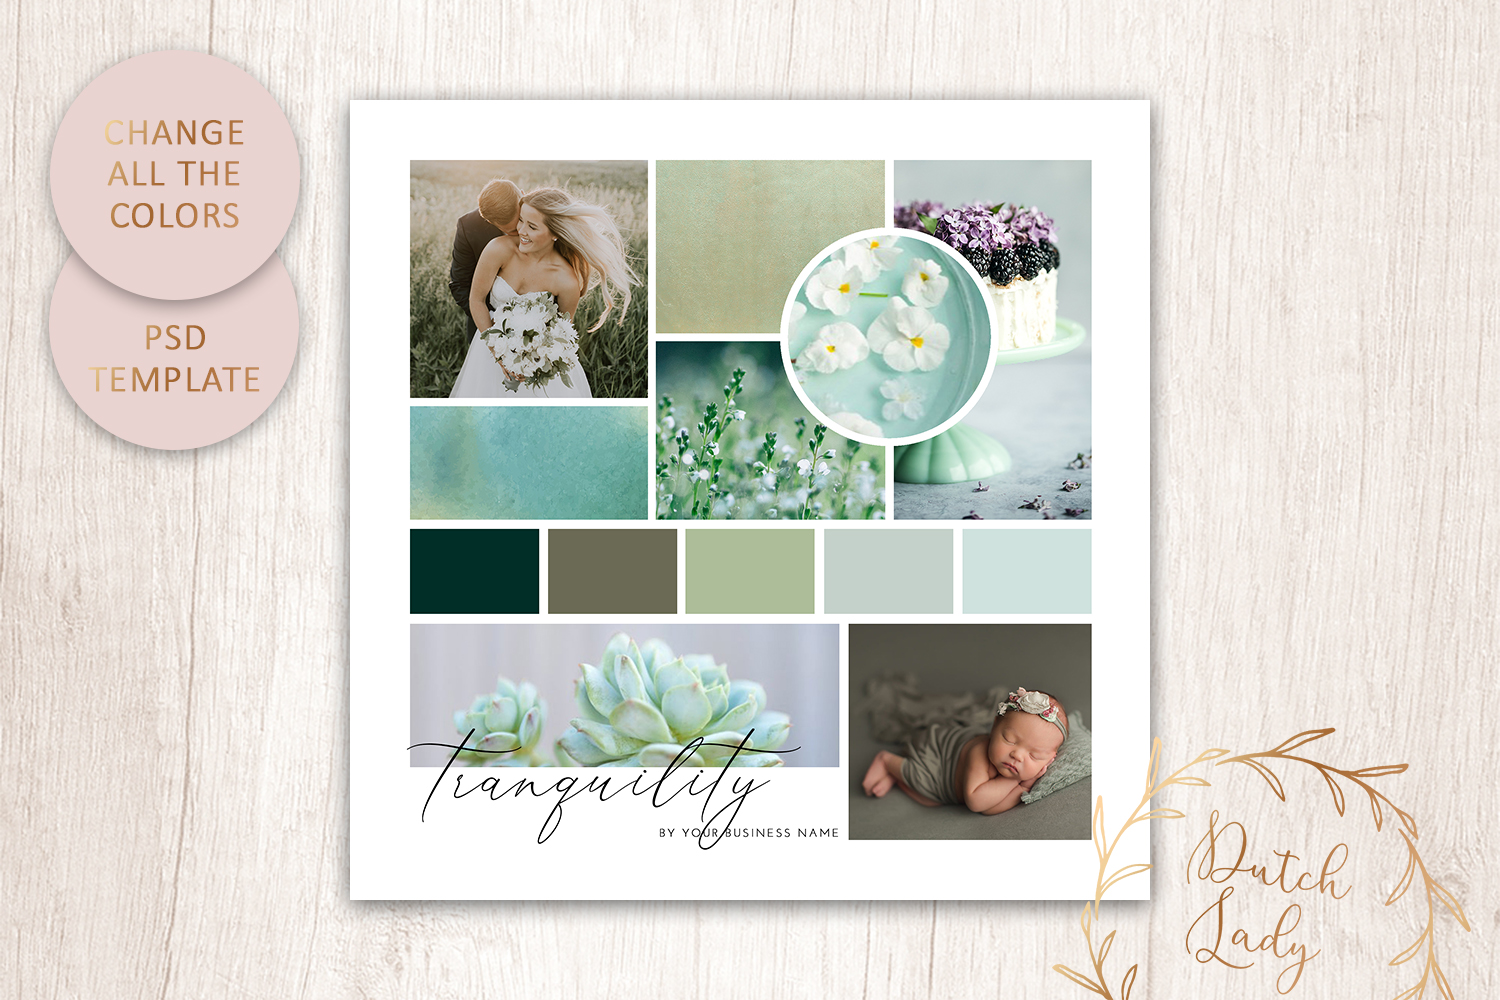 PSD Mood & Vision Board - Adobe Photoshop Template - #7 example image 3